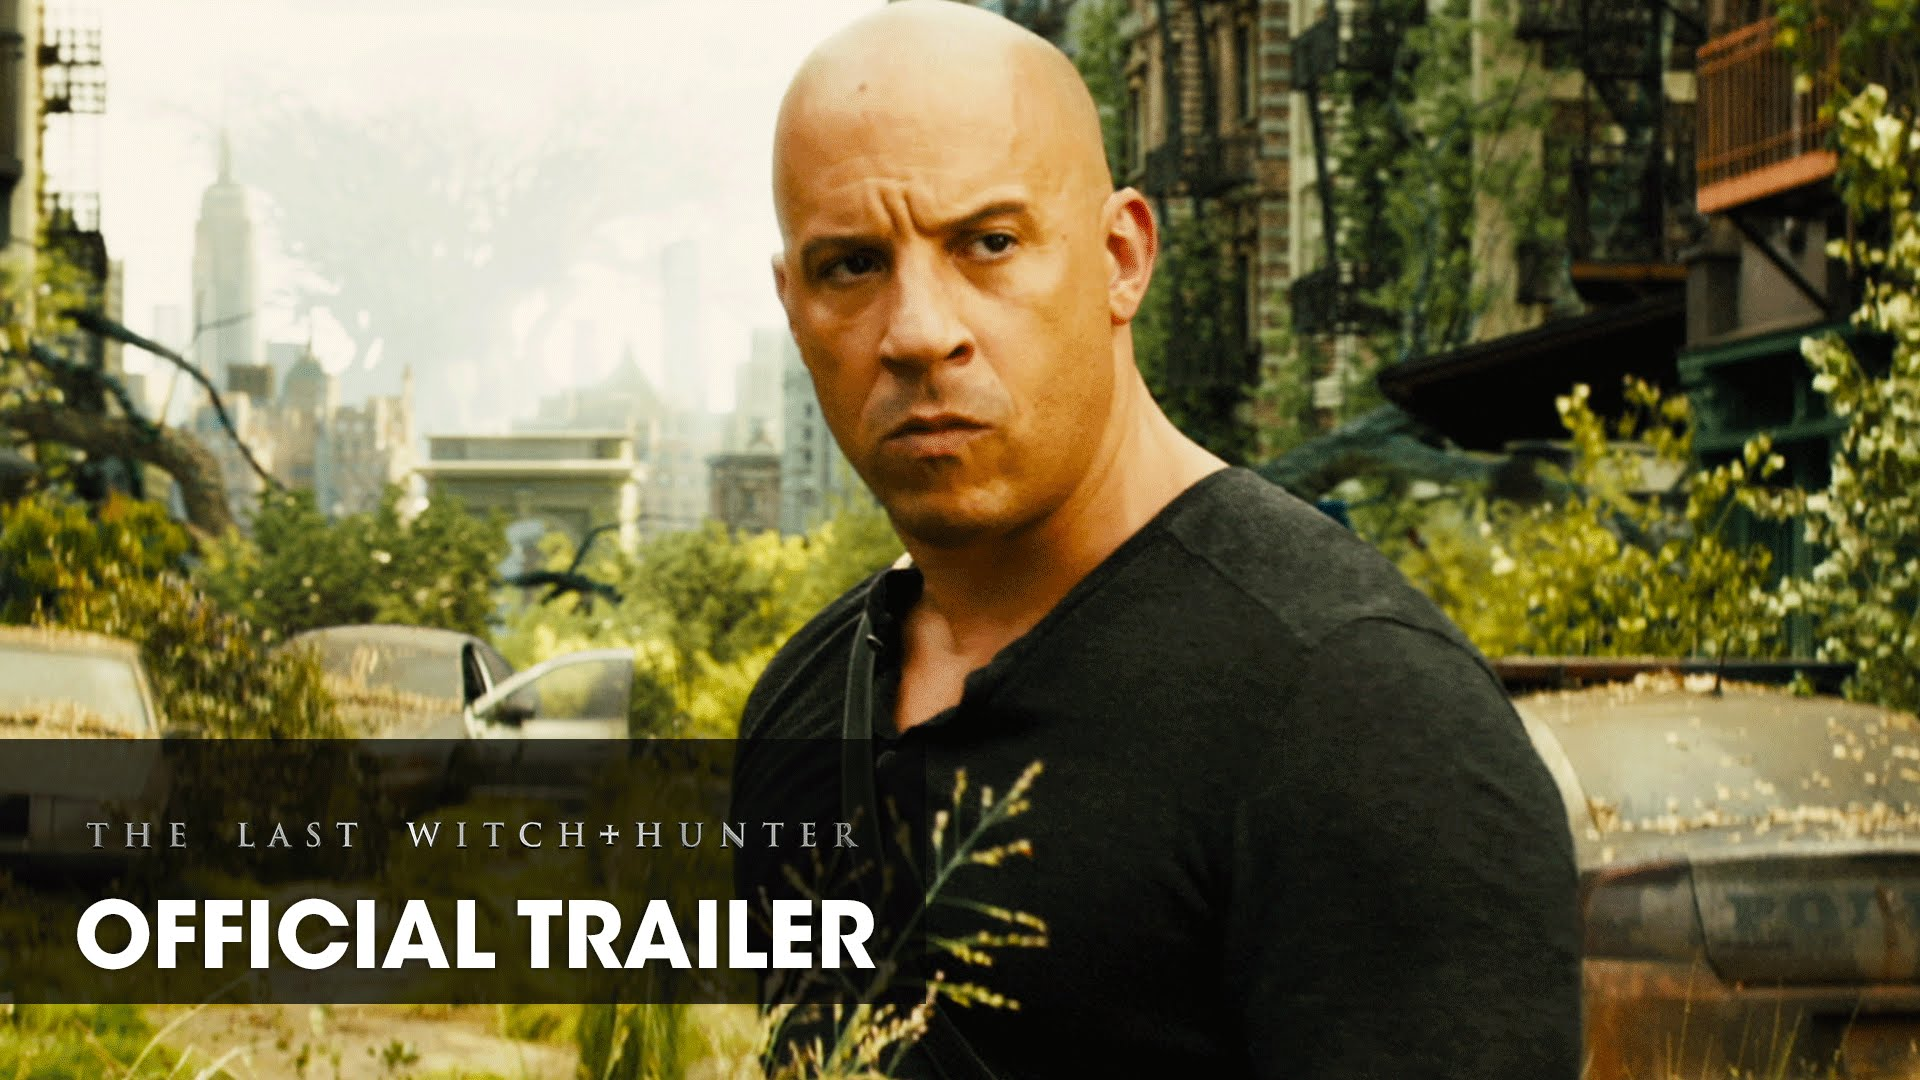 Trailer: THE LAST WITCH HUNTER